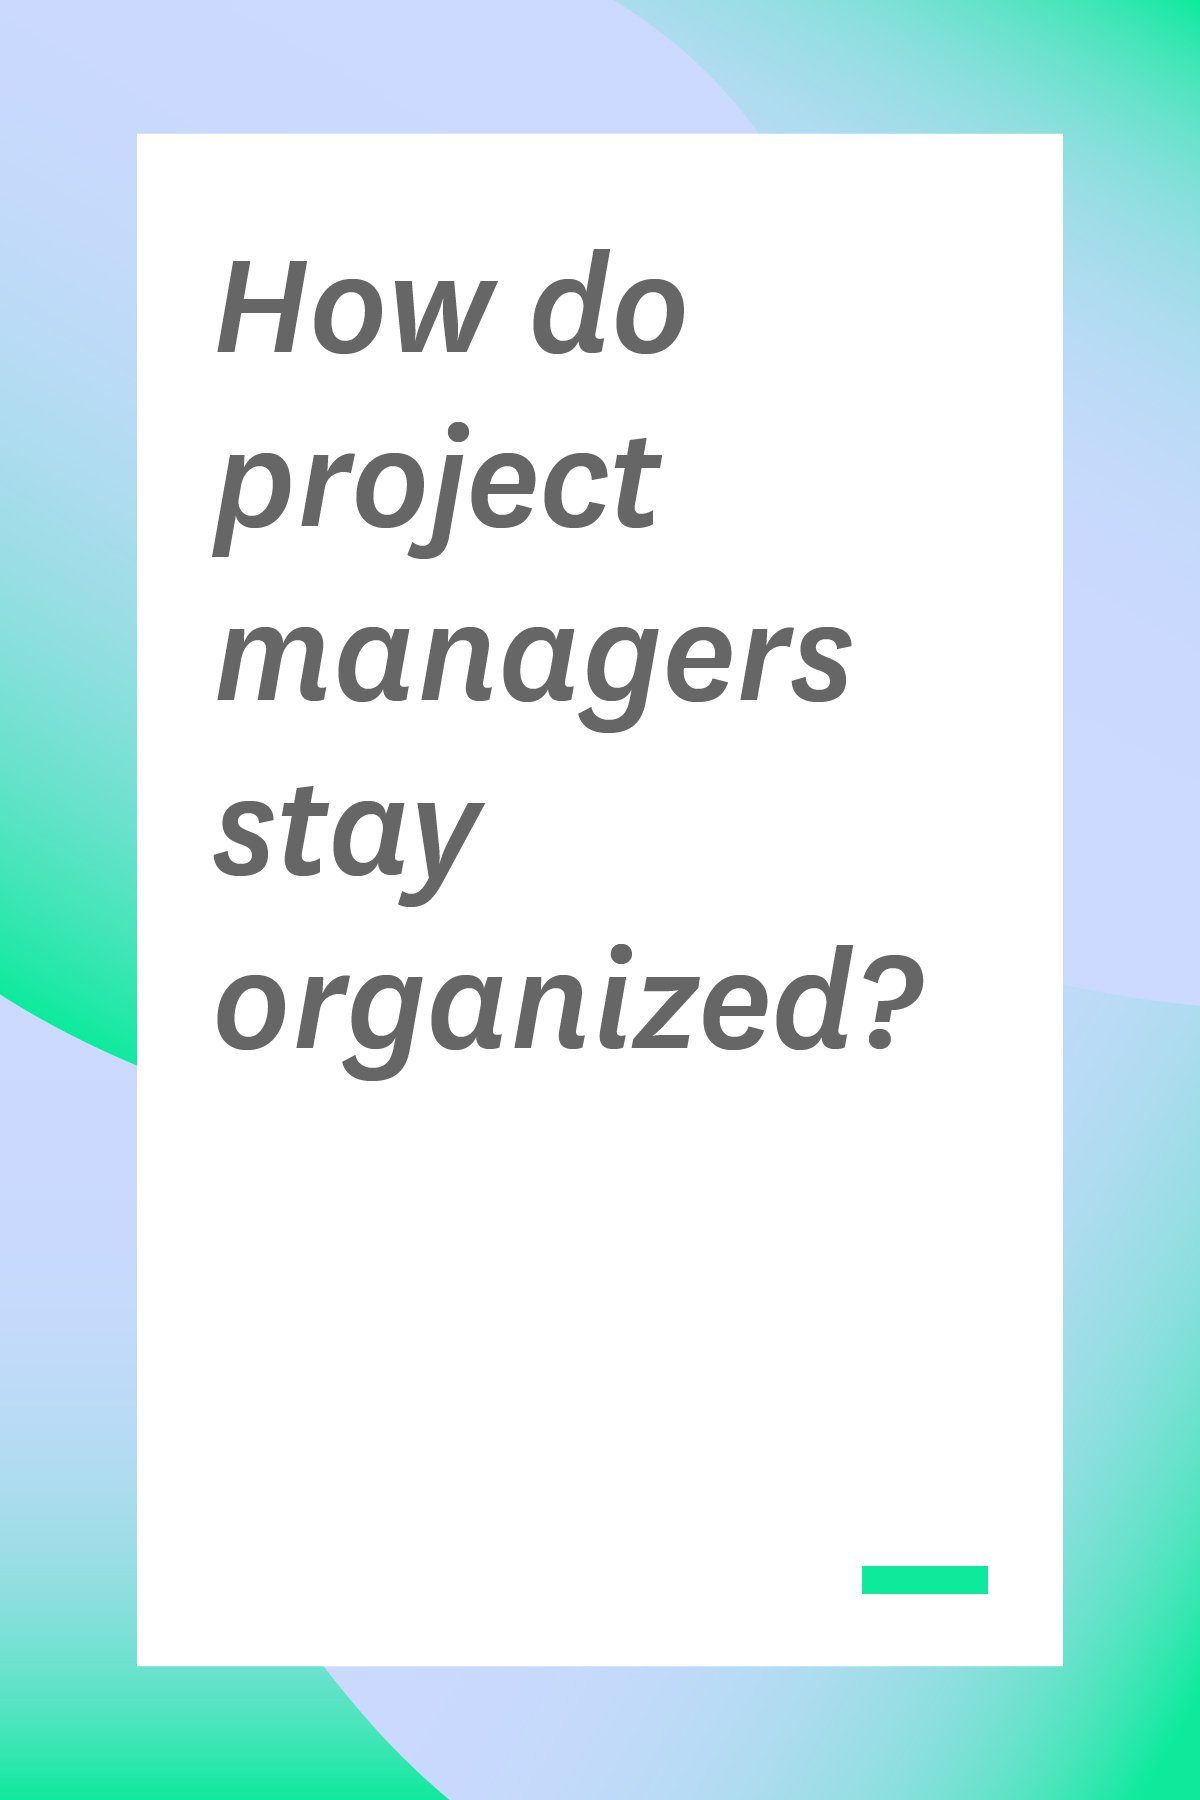 To help you stay organized as a project manager we've compiled this list of strategies. Integrating these tactics into each project will boost your ability to keep things on track and avoid falling into bad business habits. #projectmanagertips